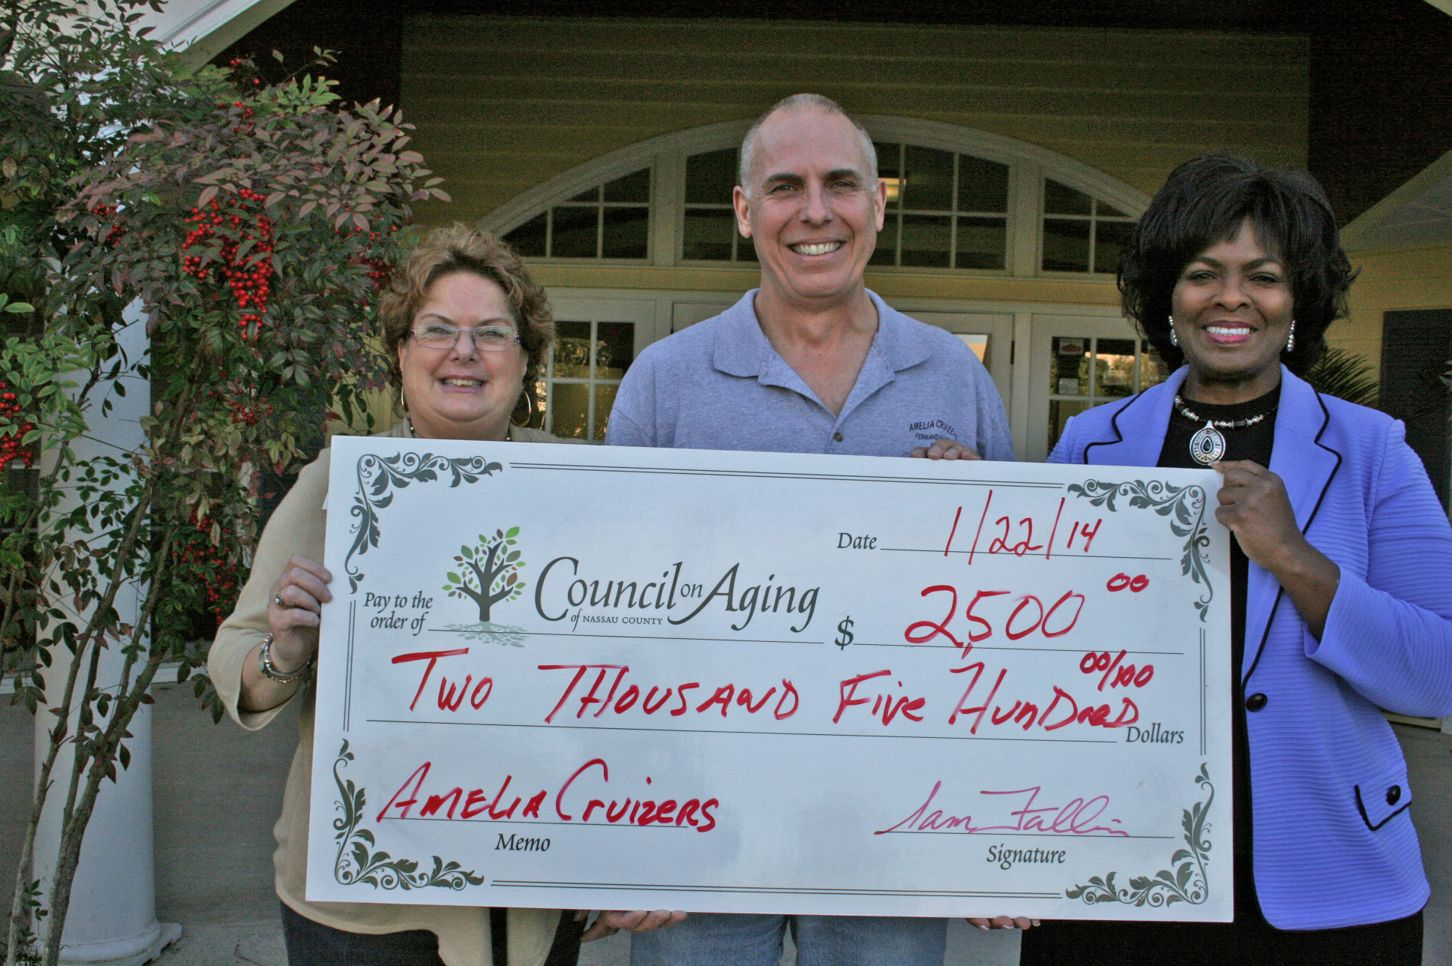 2013 Show Donation Check to the Nassau County Council on Aging